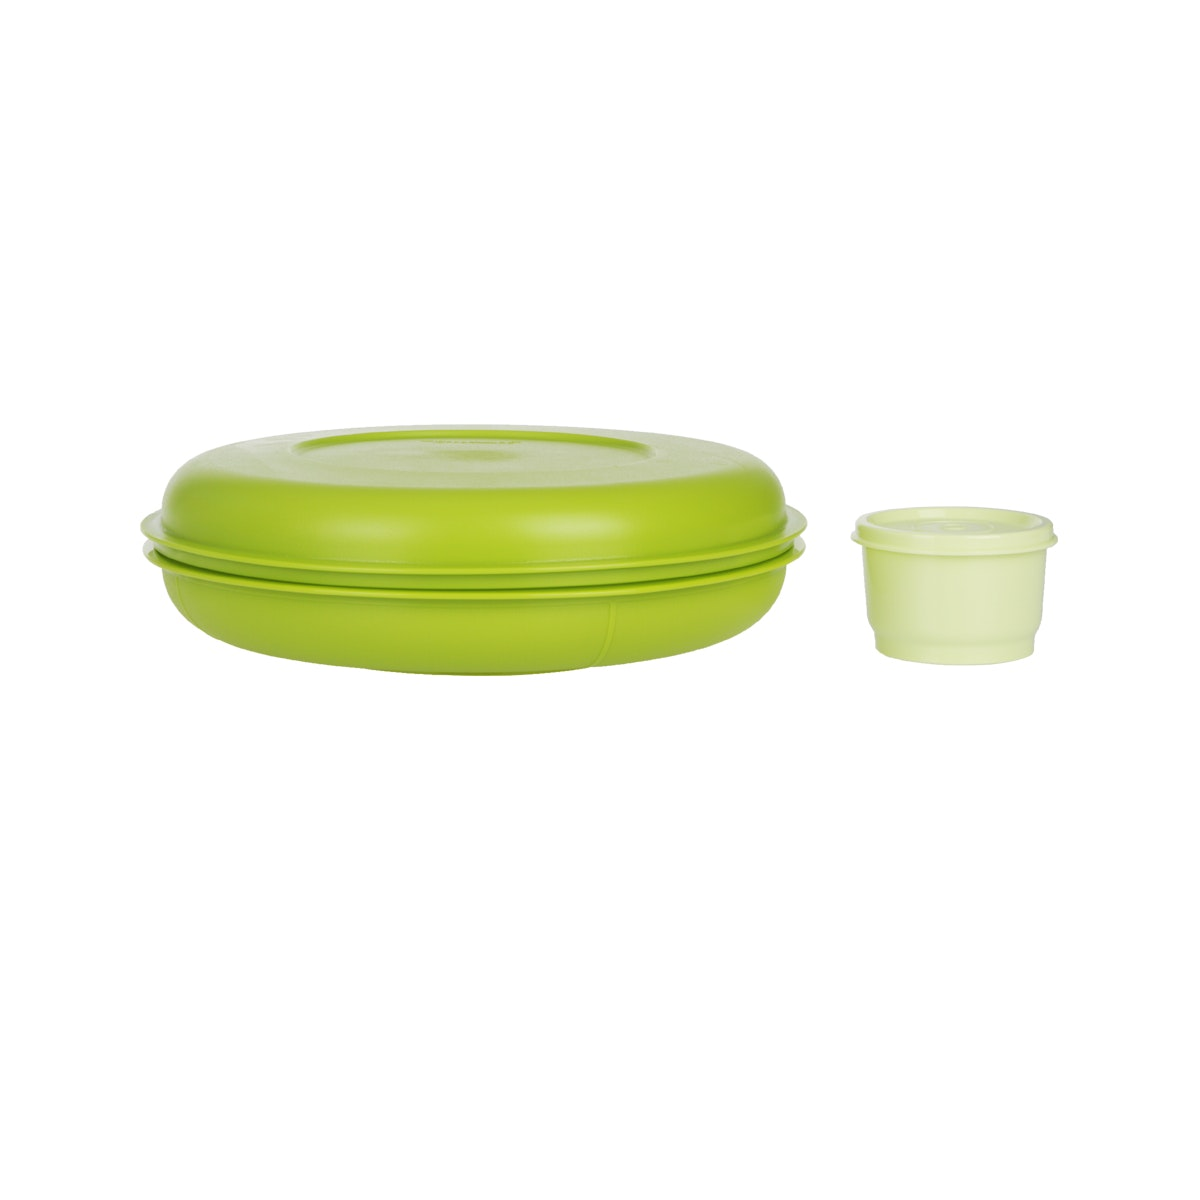 Tupperware Small Serving Center